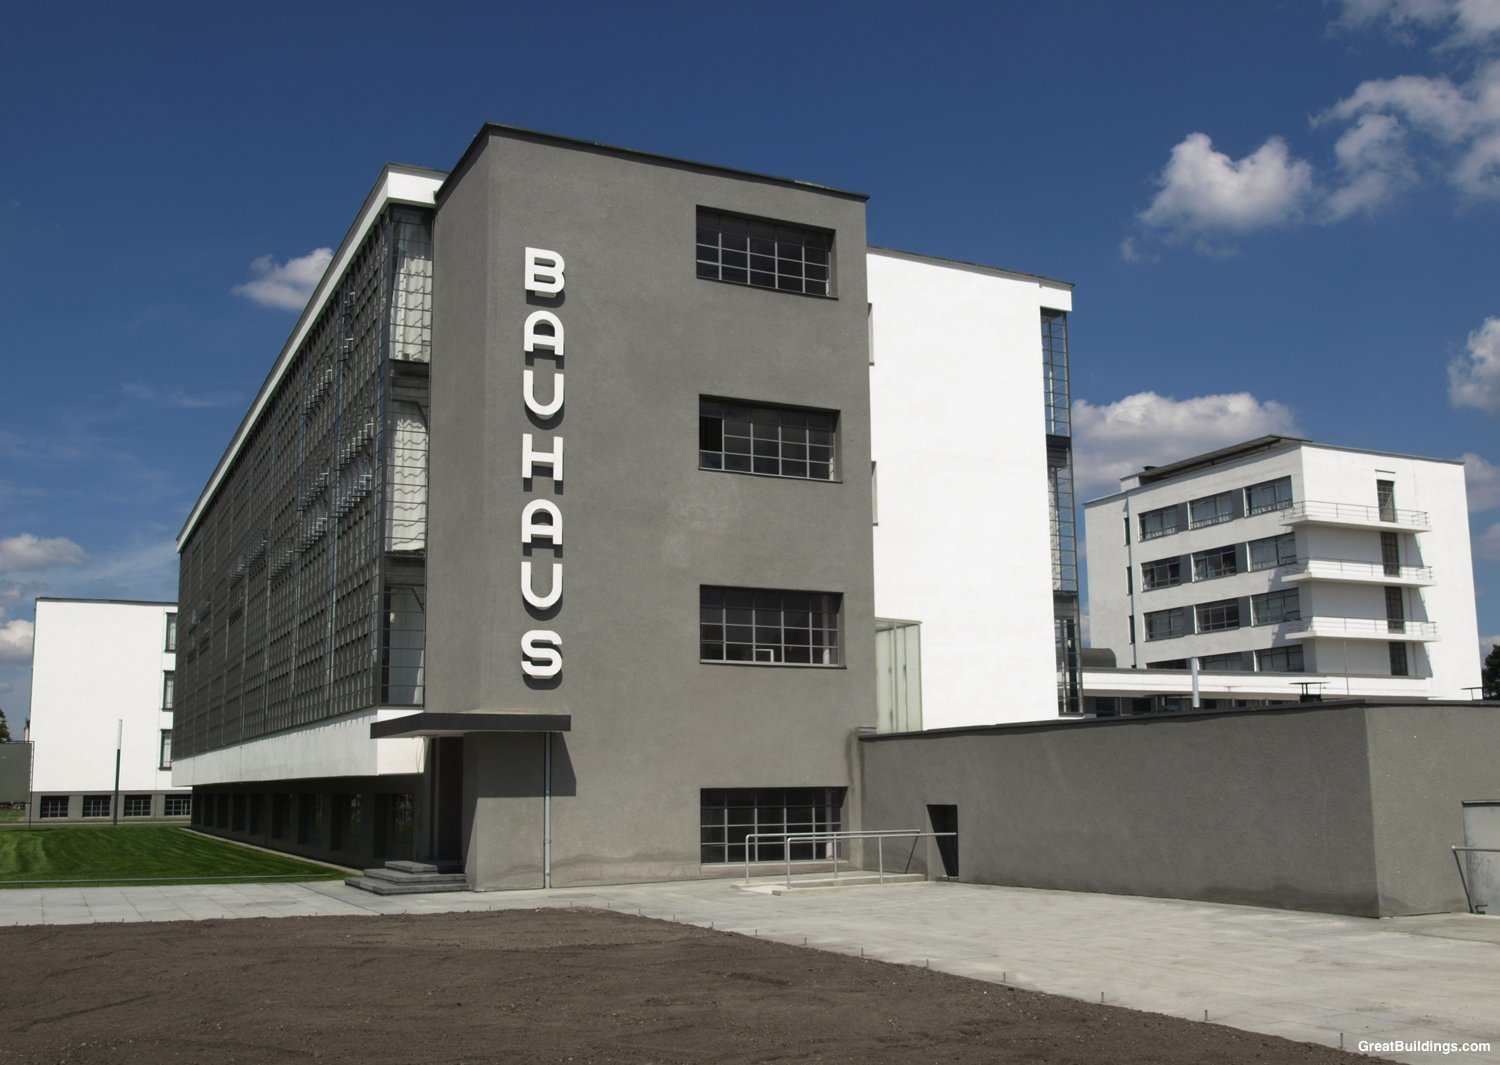 bauhaus walter gropius great buildings architecture